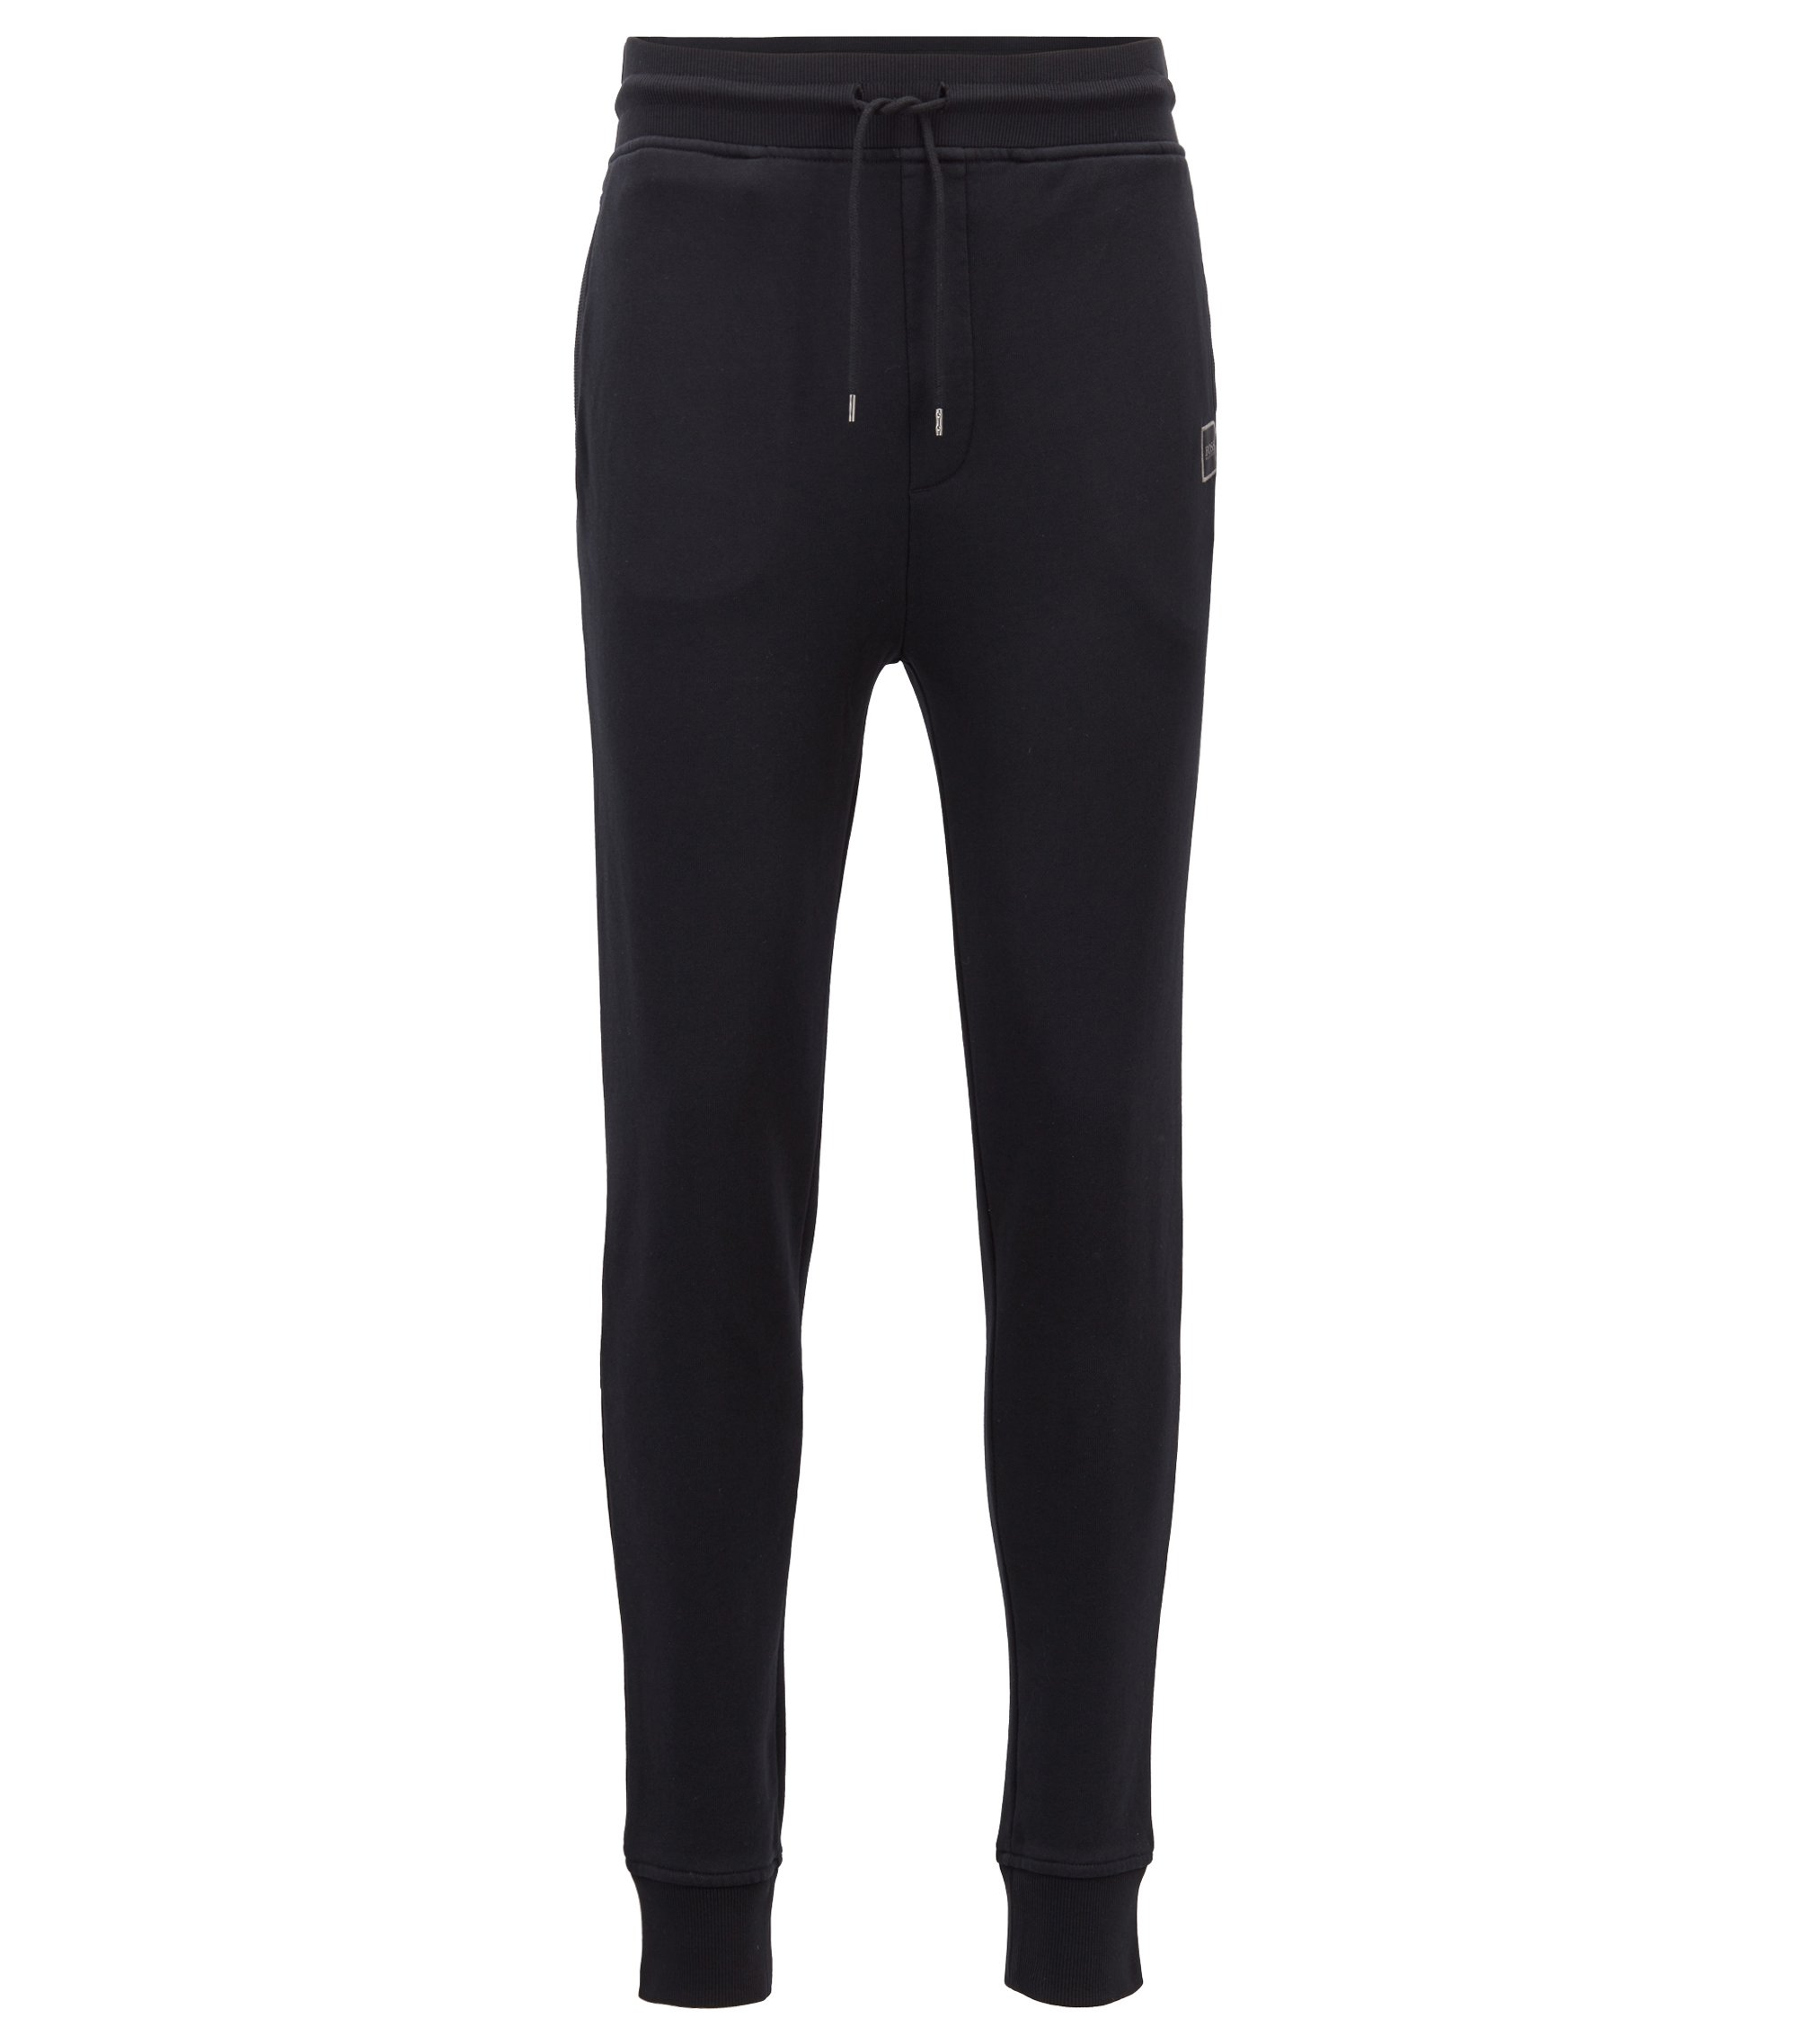 Cuffed jogging bottoms in French terry with woven logo, Black